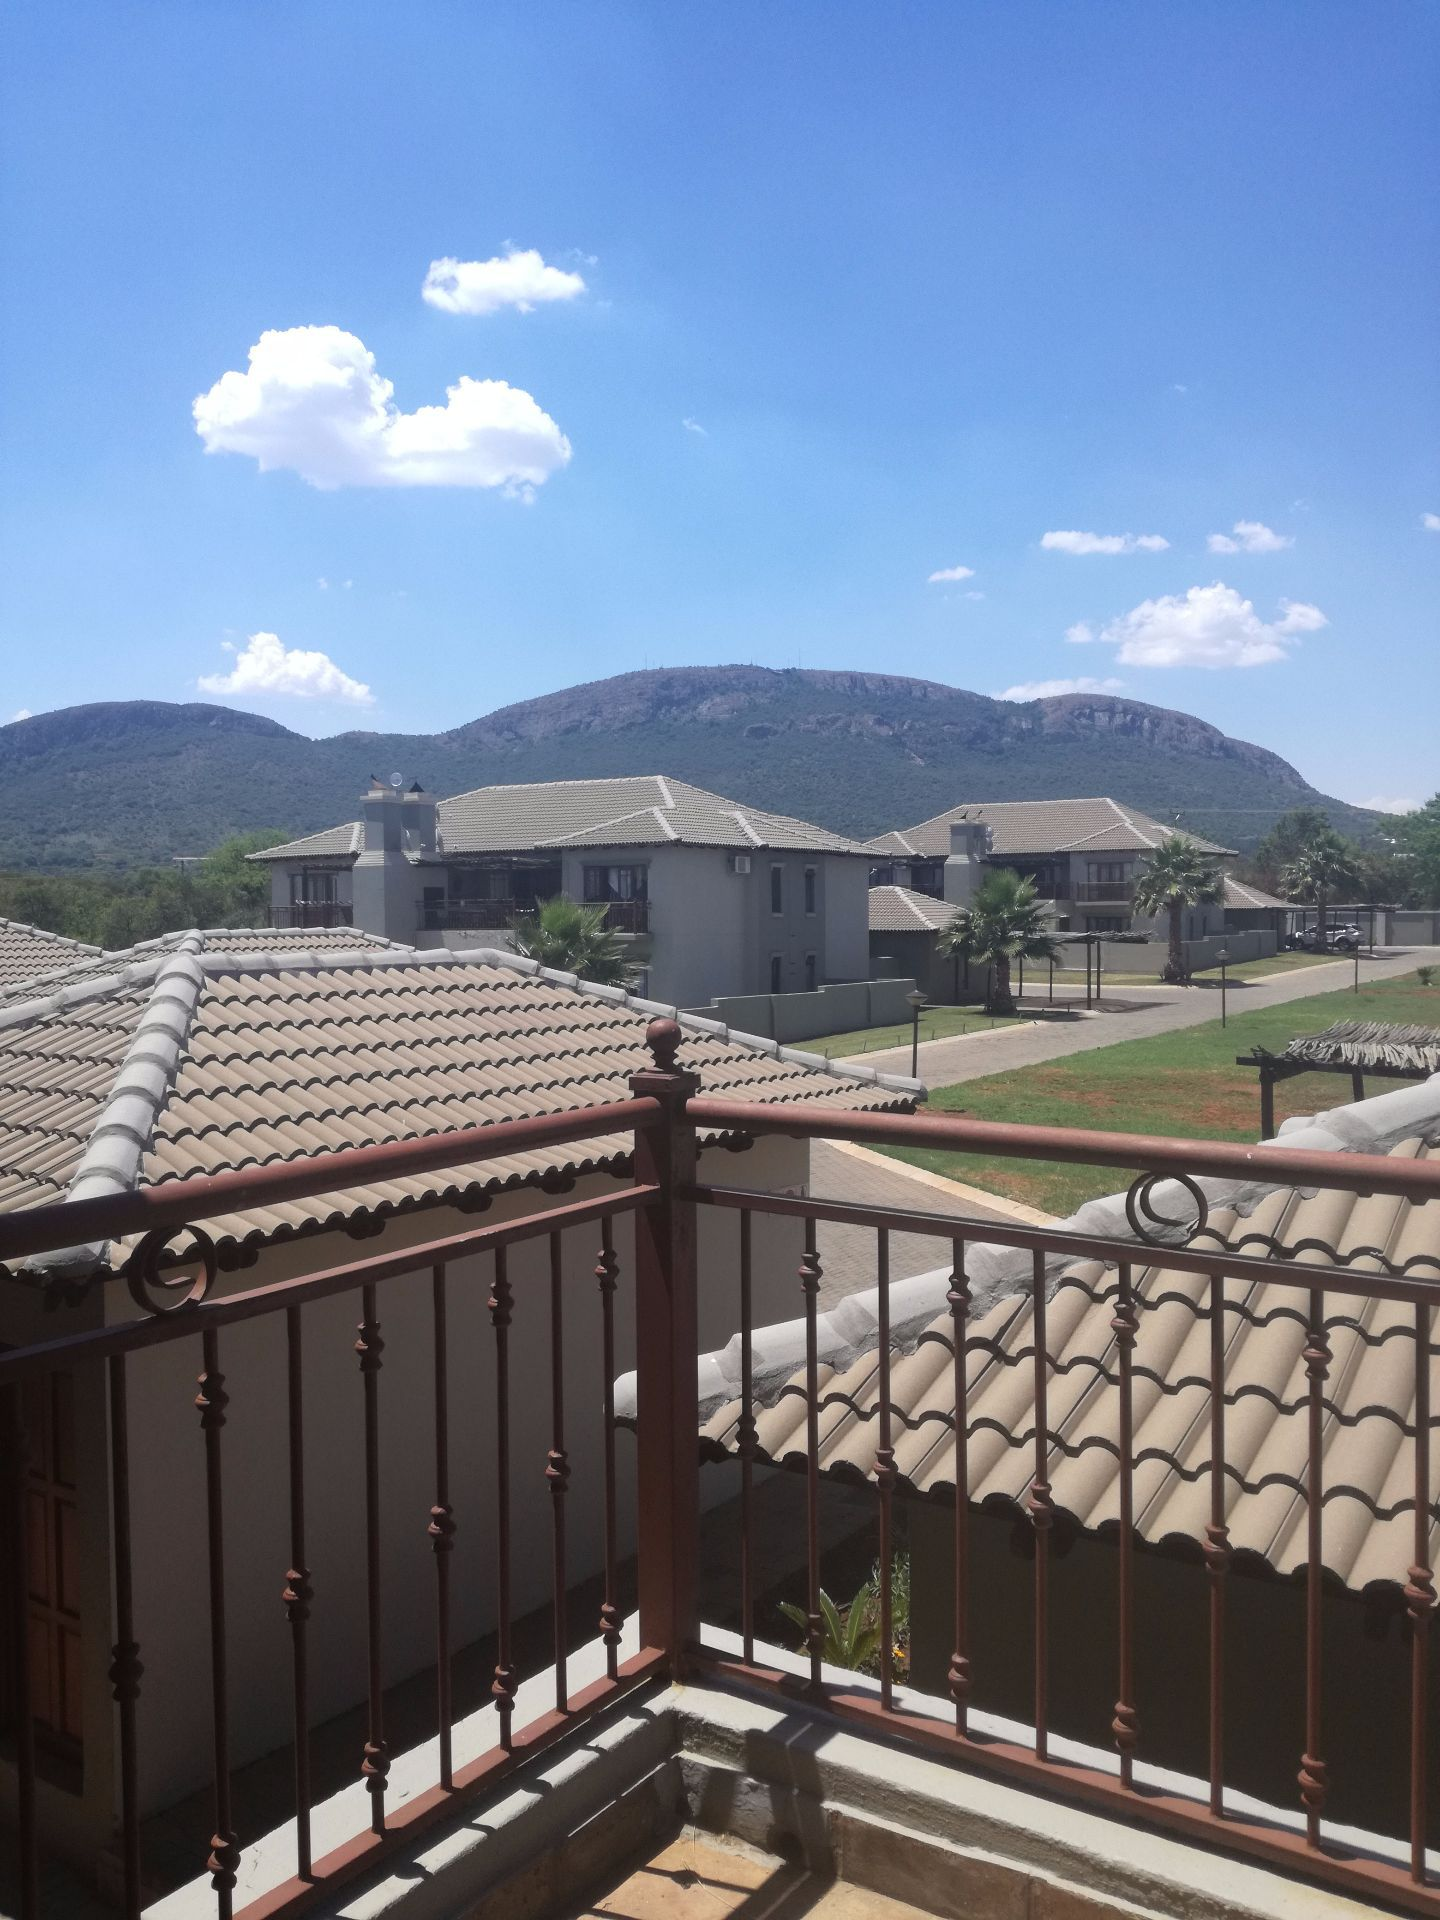 House in Melodie - View from balcony.jpg